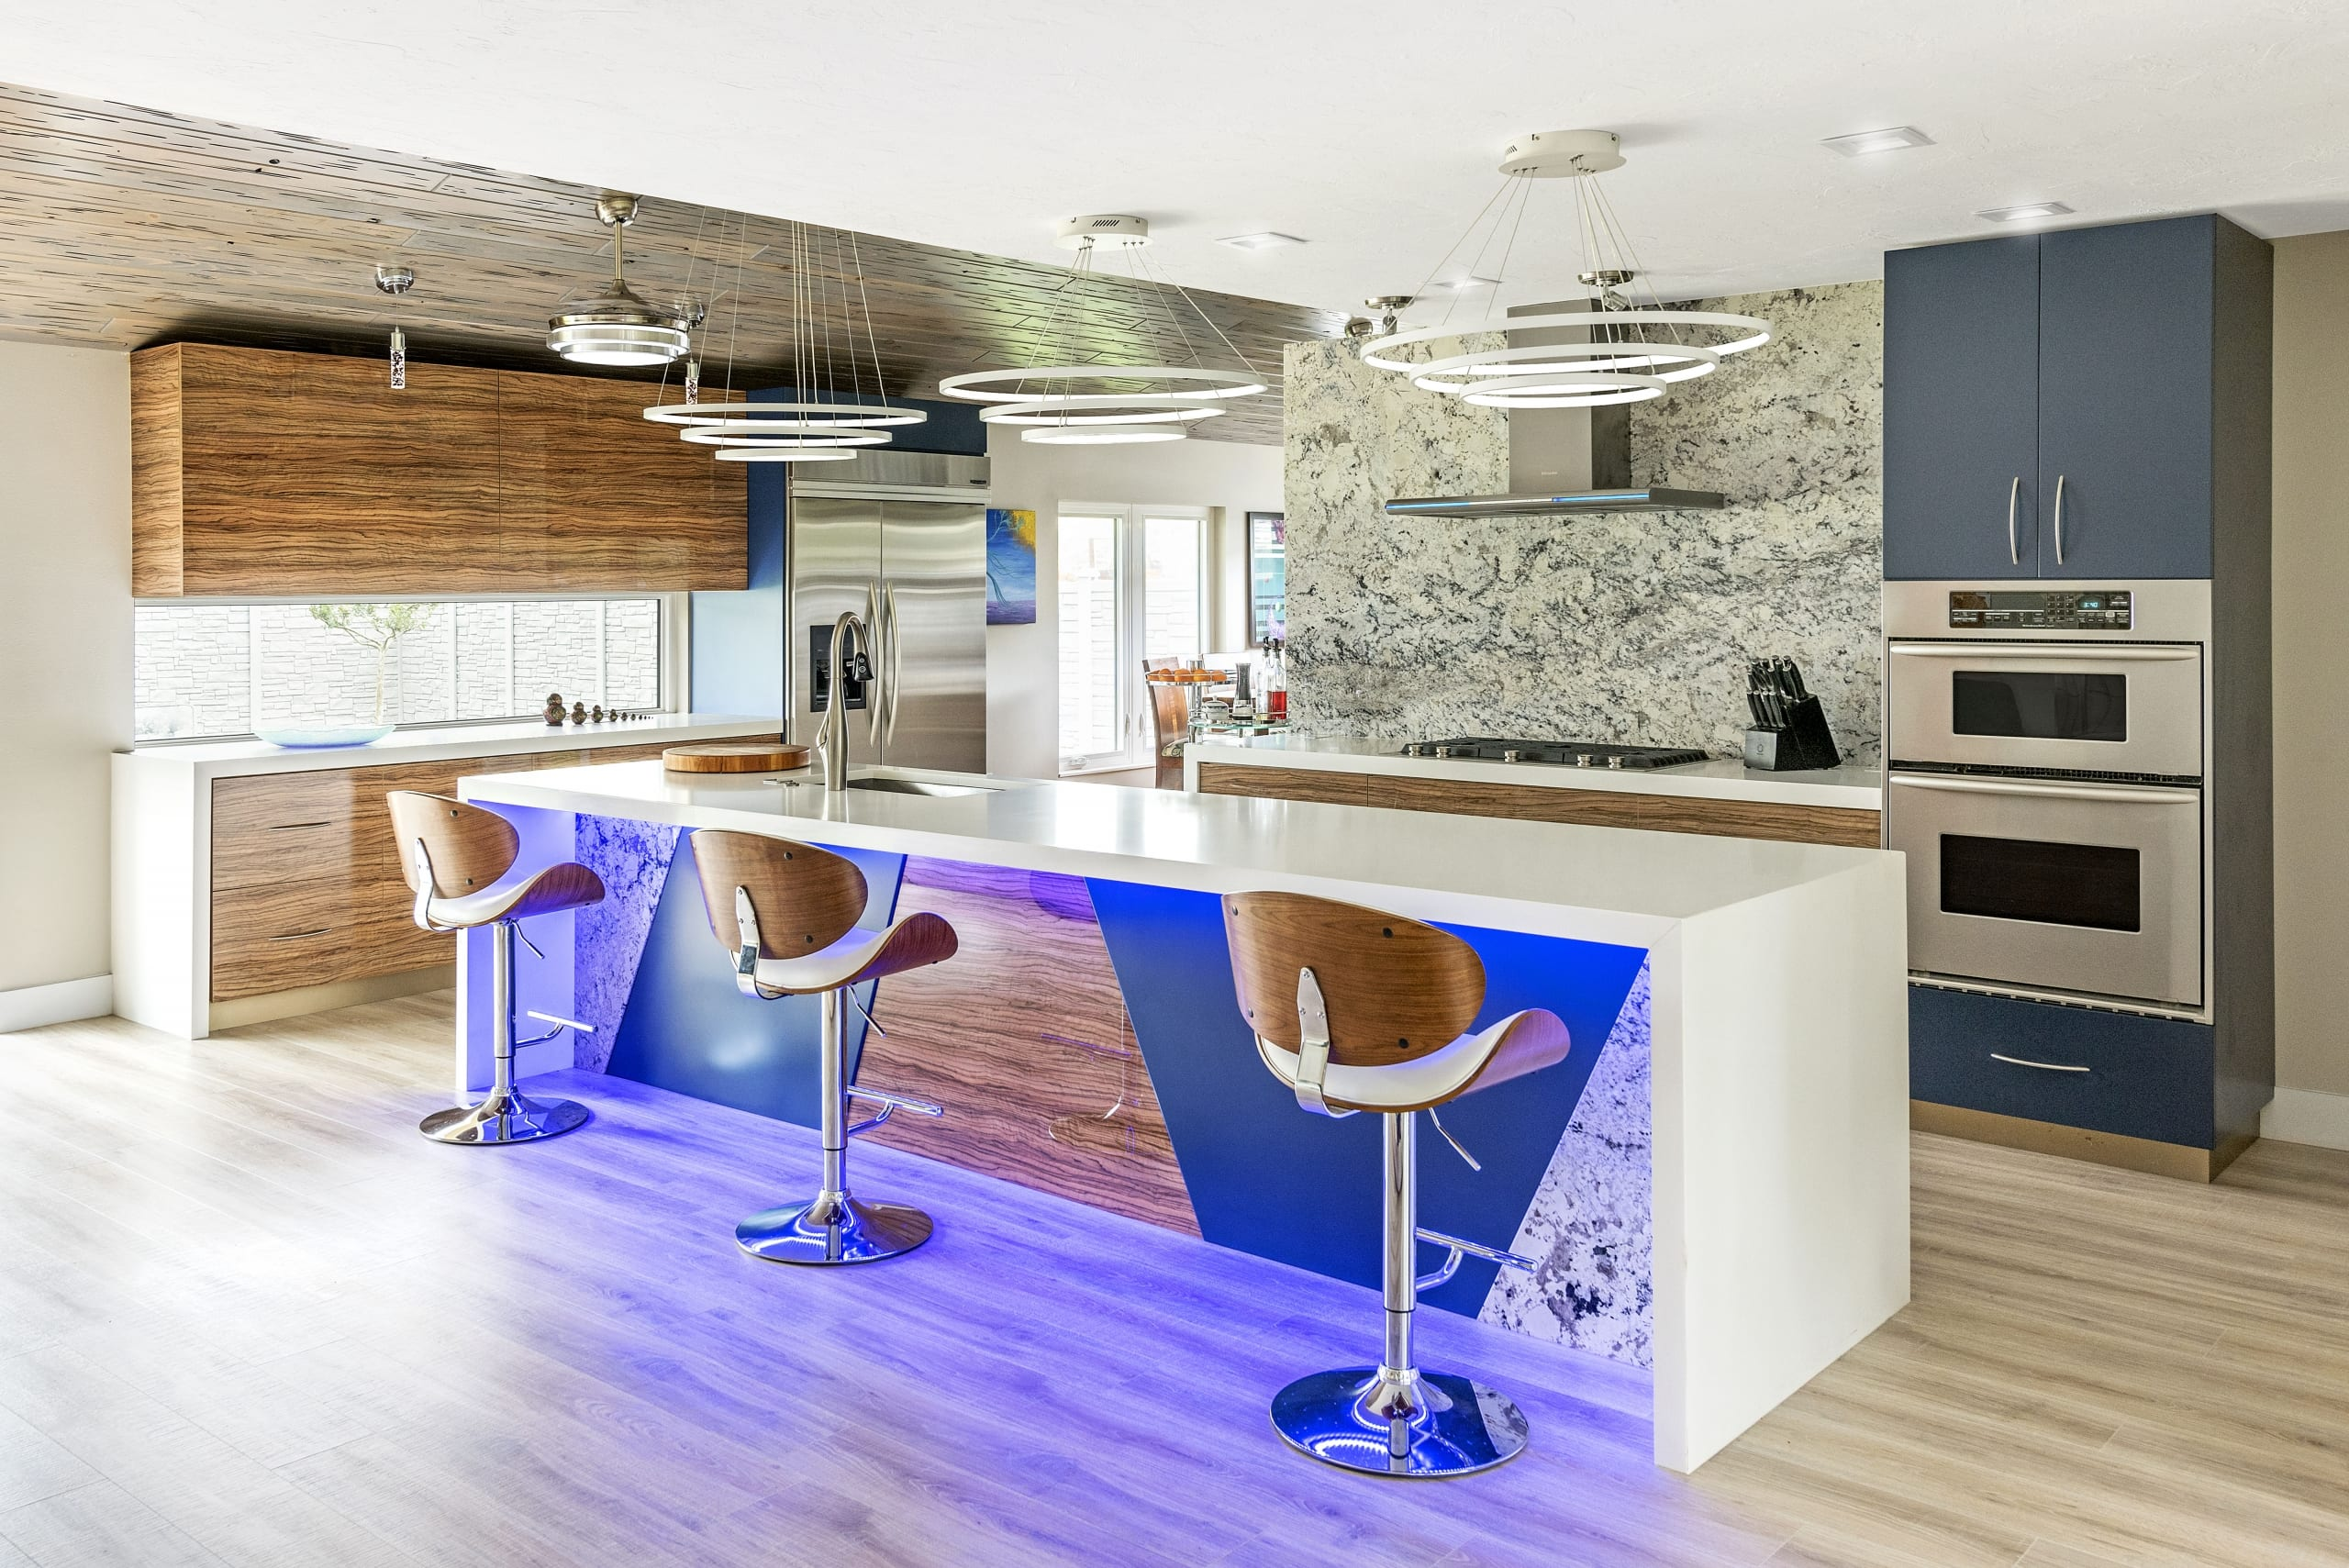 Kitchen Varnished Wood Cabinets Marble Splashback Gas Cooker Blue Cabinet White Top Breakfast Bar Island Neon Lights Blue Ceiling Lights Wood Slat Ceiling